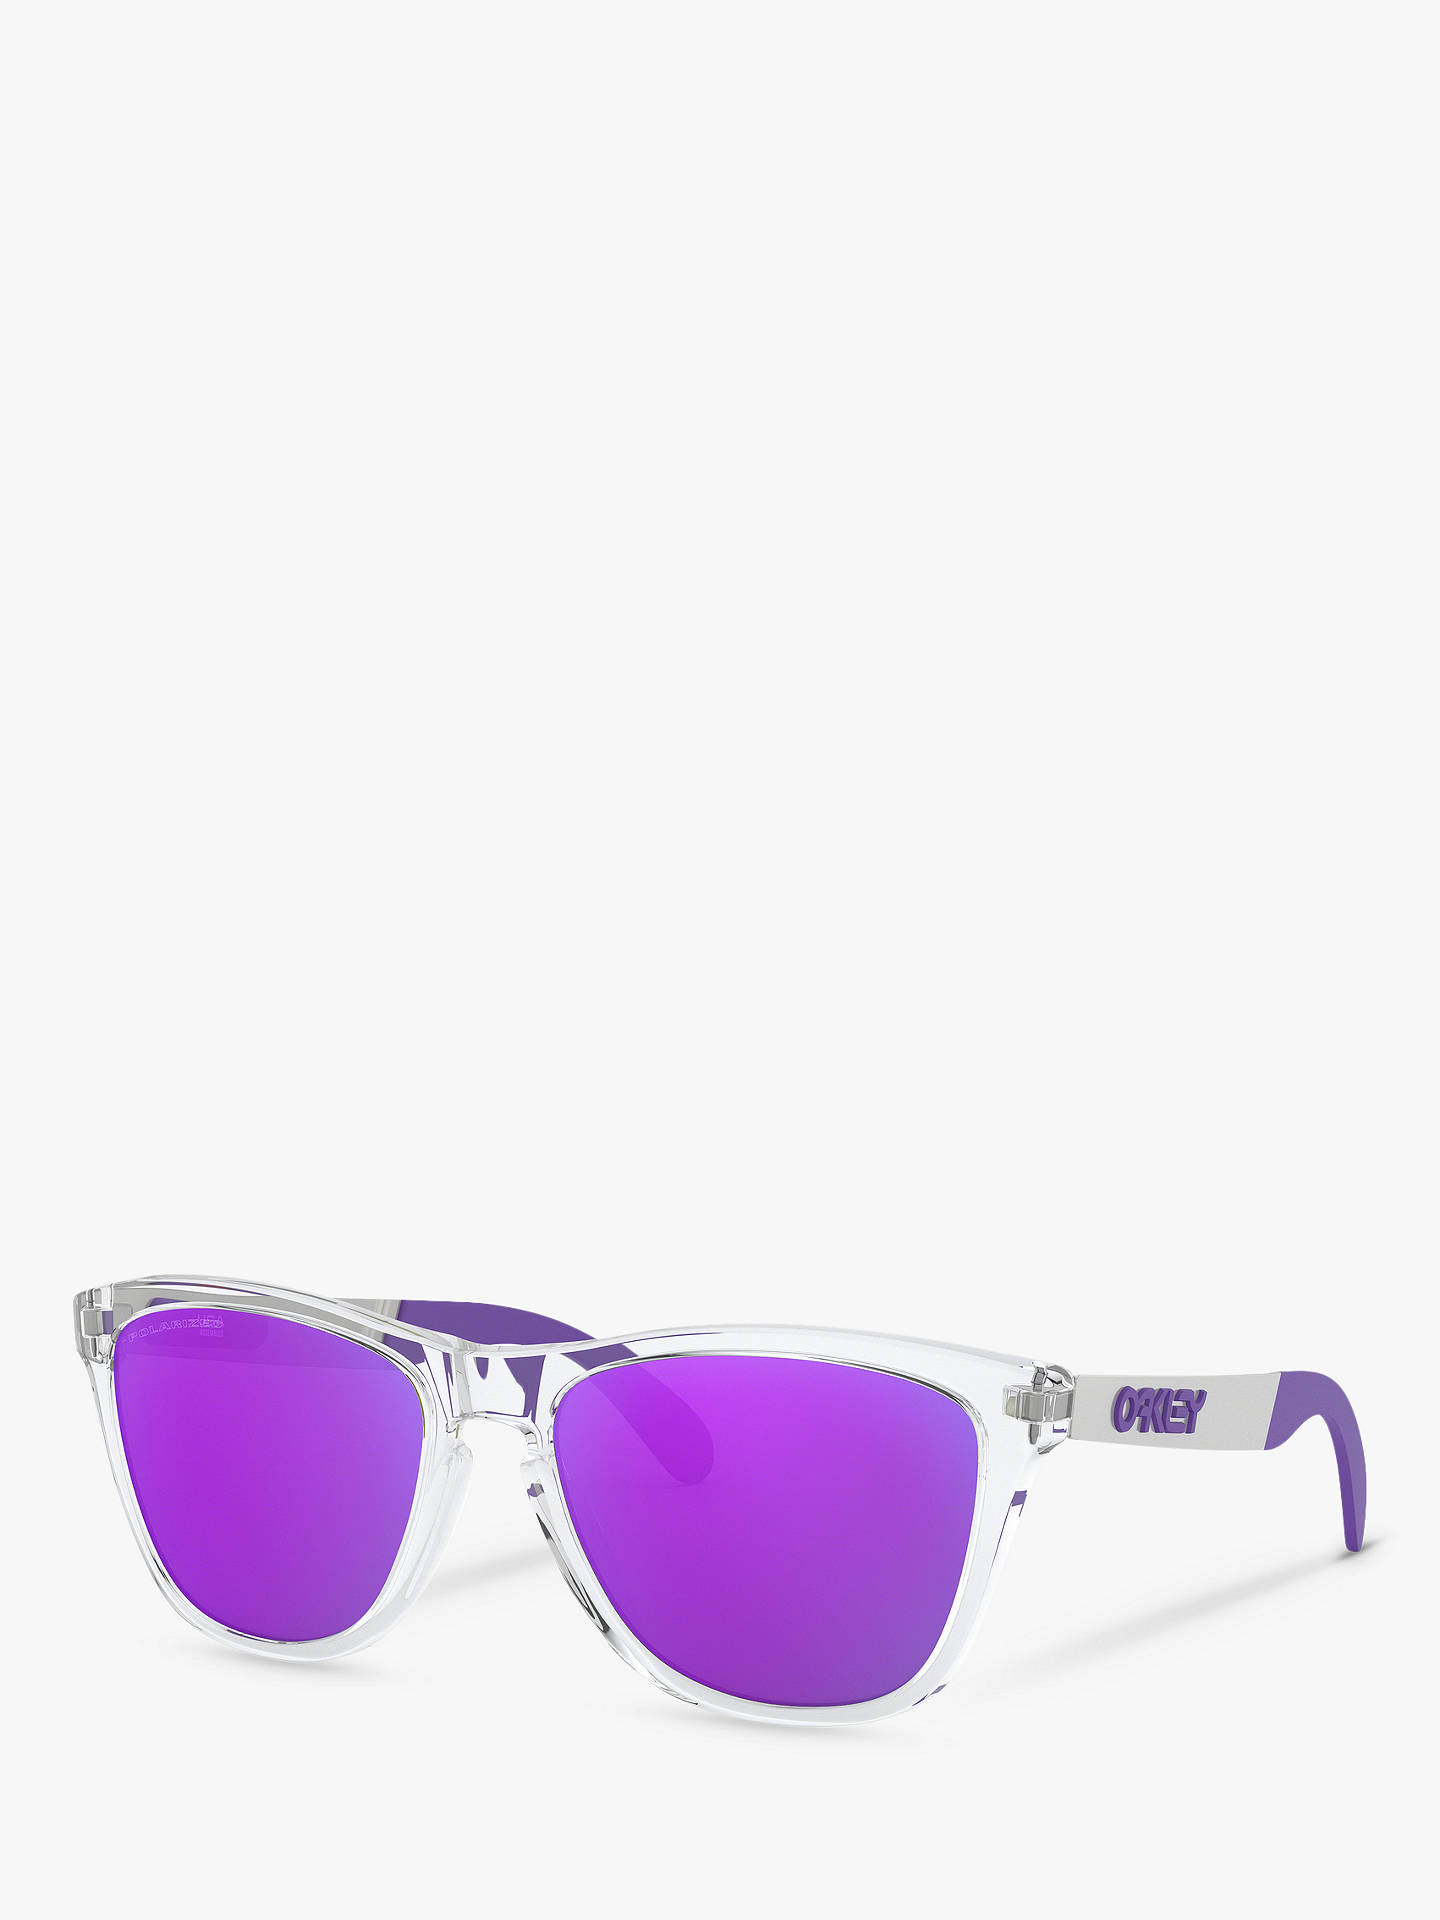 27929489d753 Buy Oakley OO9428 Men's Frogskins Polarised Square Sunglasses, Clear Mix/ Purple Online at johnlewis ...